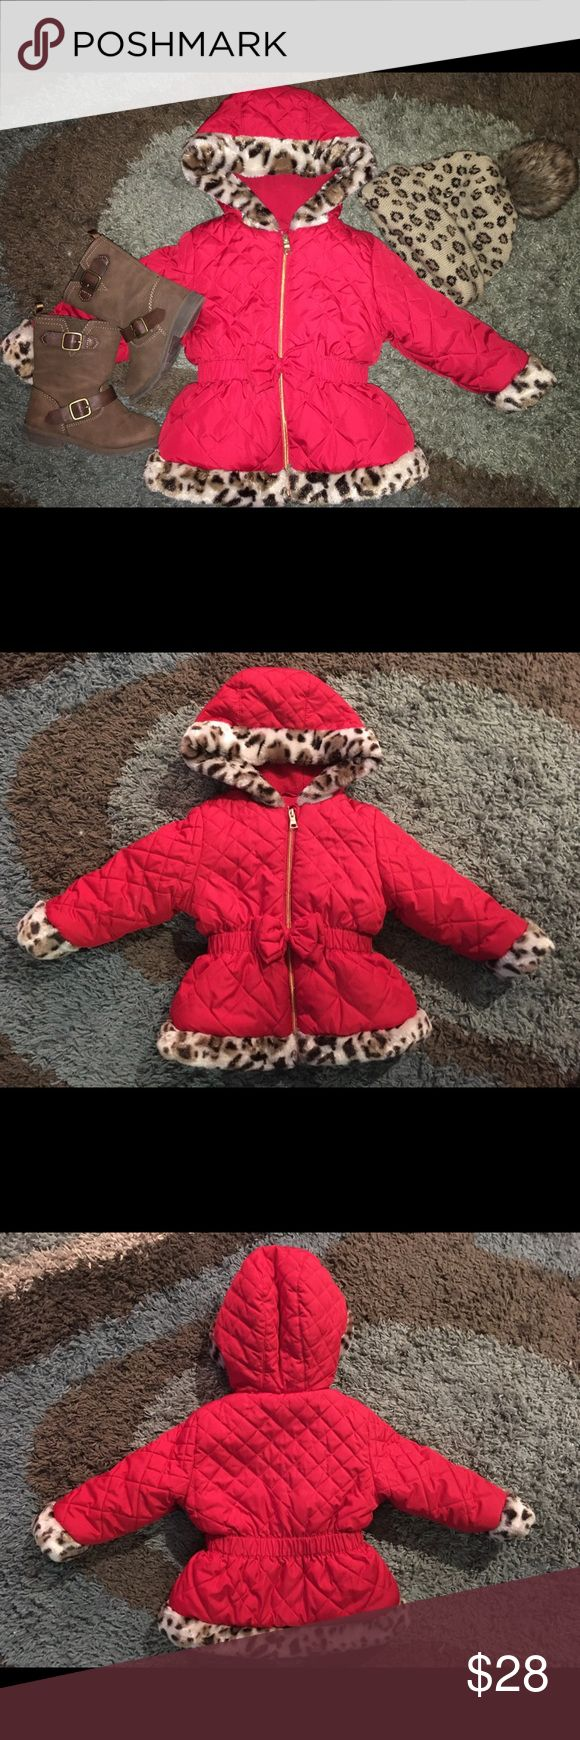 Pistachio brand quilted puffer coat in size 24M/2T Red and cheetah quilted winter coat in LIKE NEW CONDITION size 24M/2T! Accepting all reasonable offers! pistacio Jackets & Coats Puffers